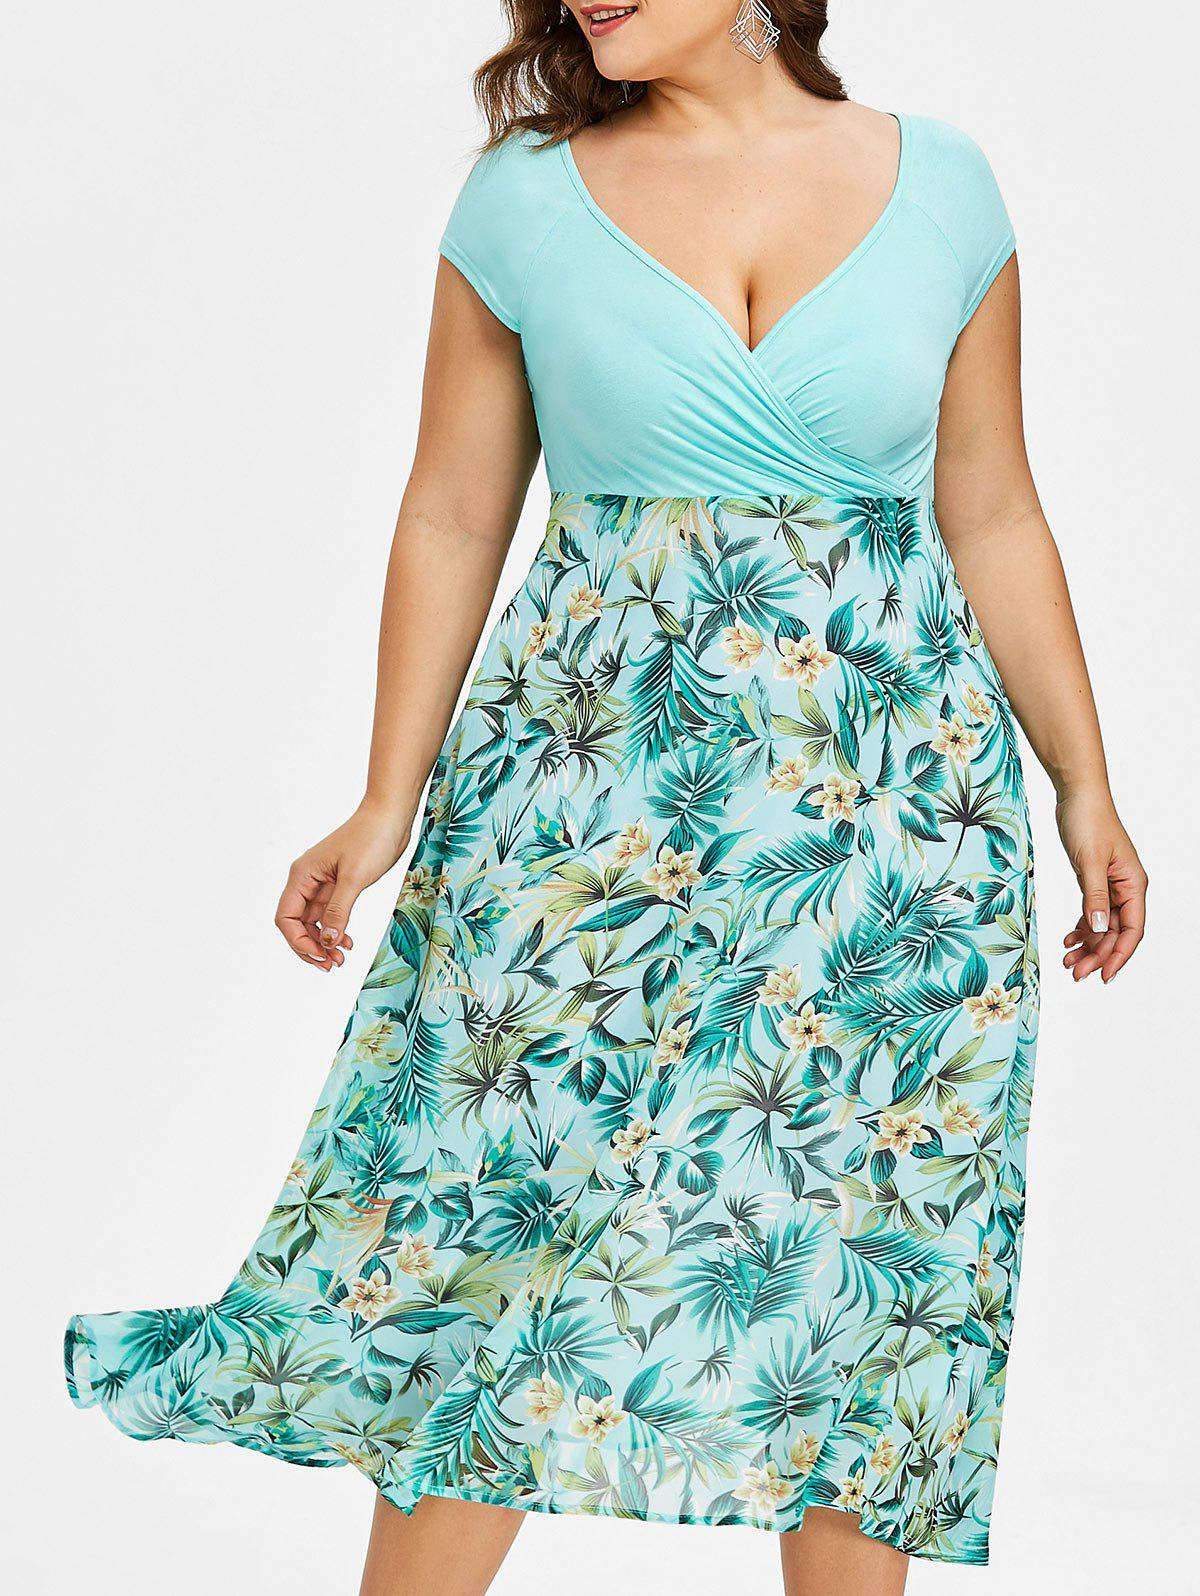 06421fd68e5 46% OFF   2019 Plus Size V-neck Tropical Holiday Dress